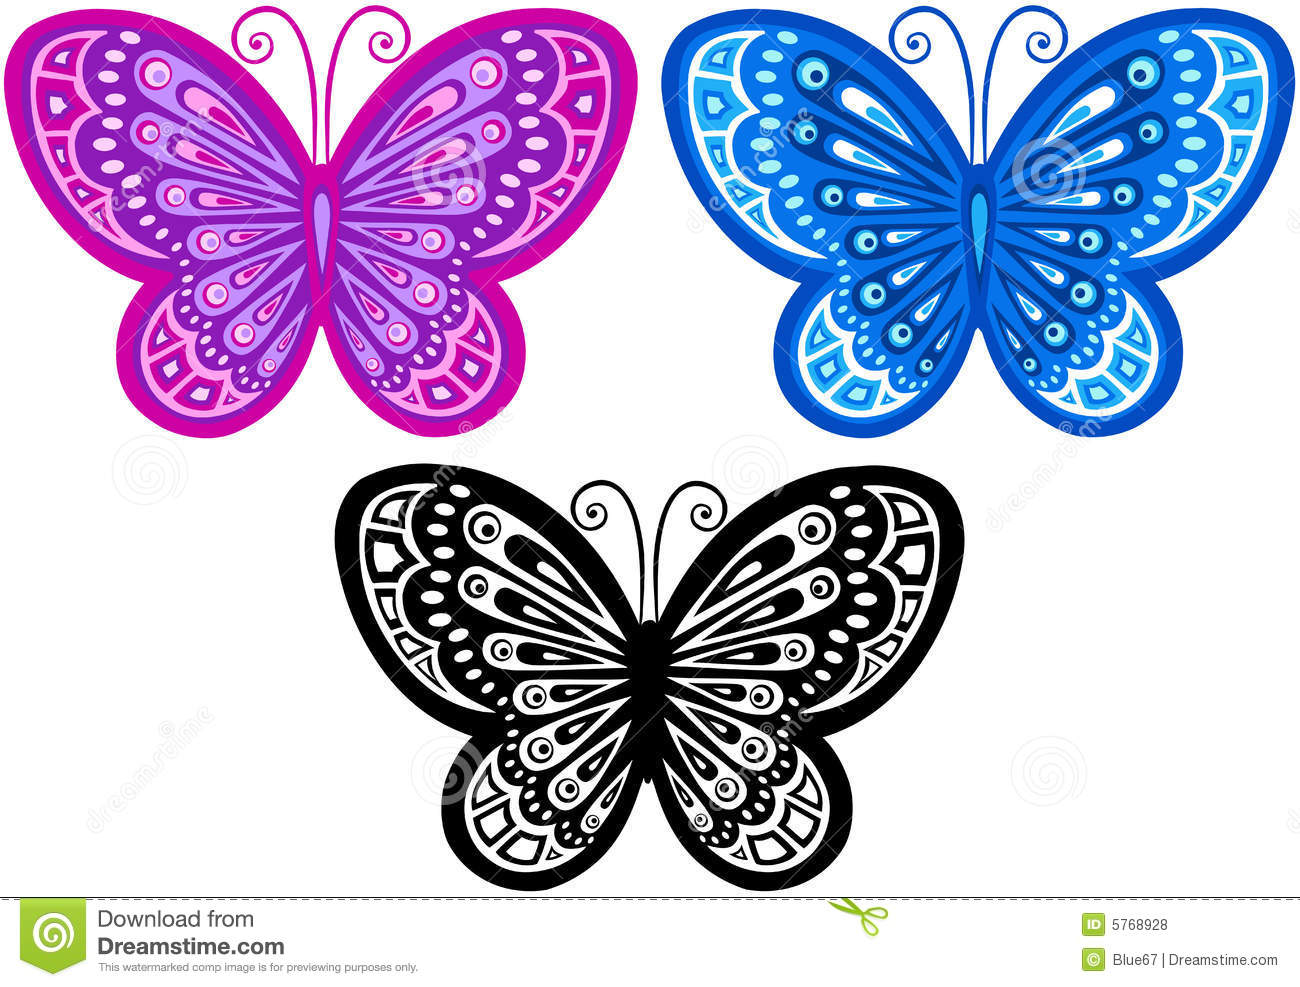 Pink butterfly vector background hd wallpapers pink butterfly vector - Pink Butterfly Vector Illustration Butterfly Vector Illustration Royalty Free Stock Photos